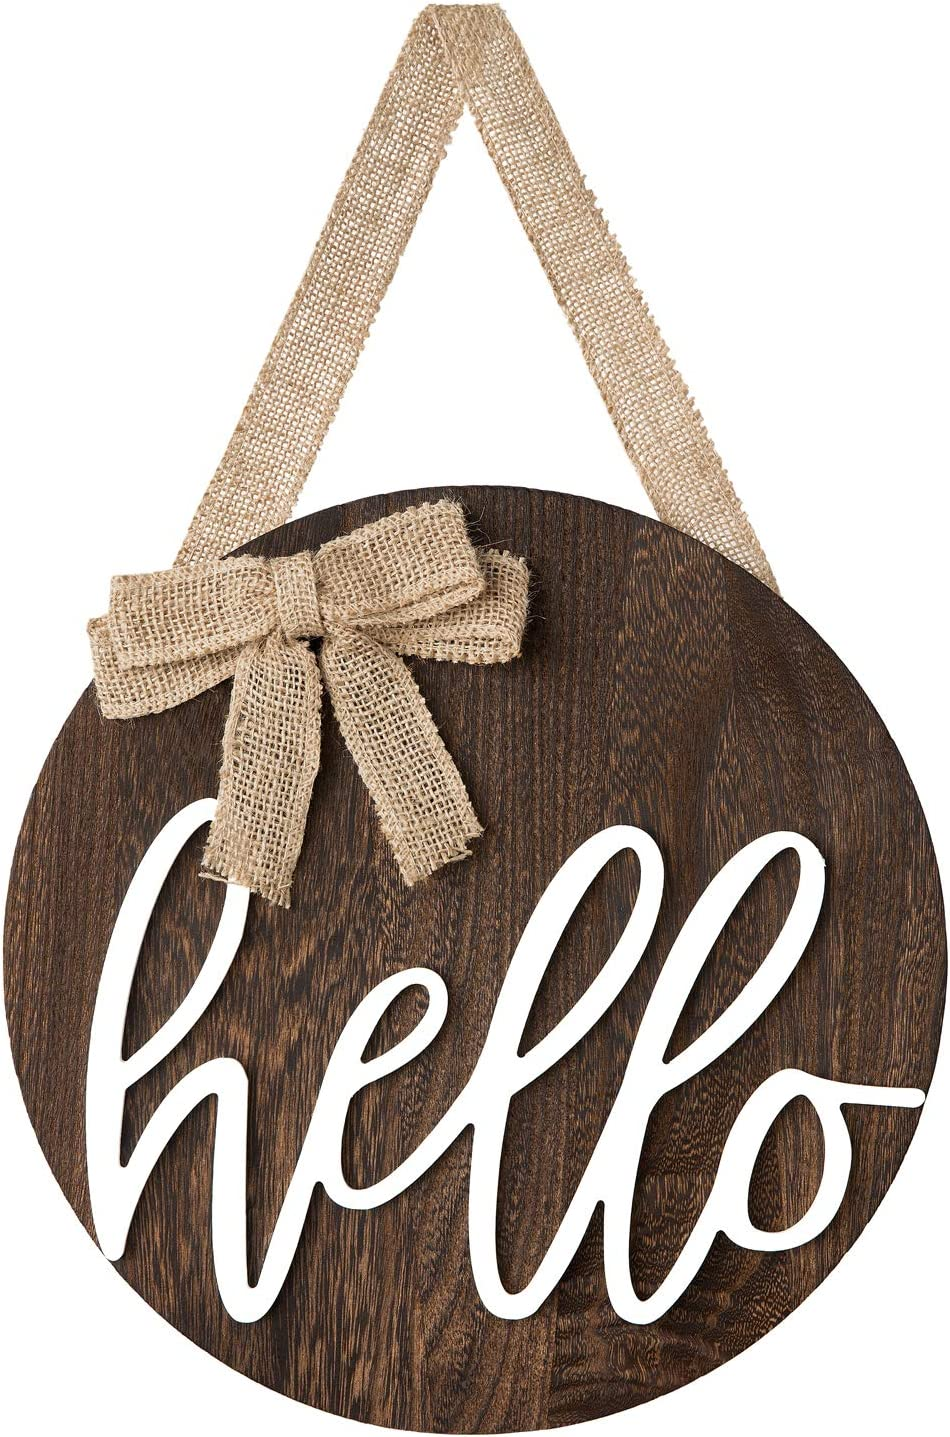 Dahey Hello Sign Rustic Front Door Decor Round Wood Hanging Sign Farmhouse Porch Decorations for Home, Brown